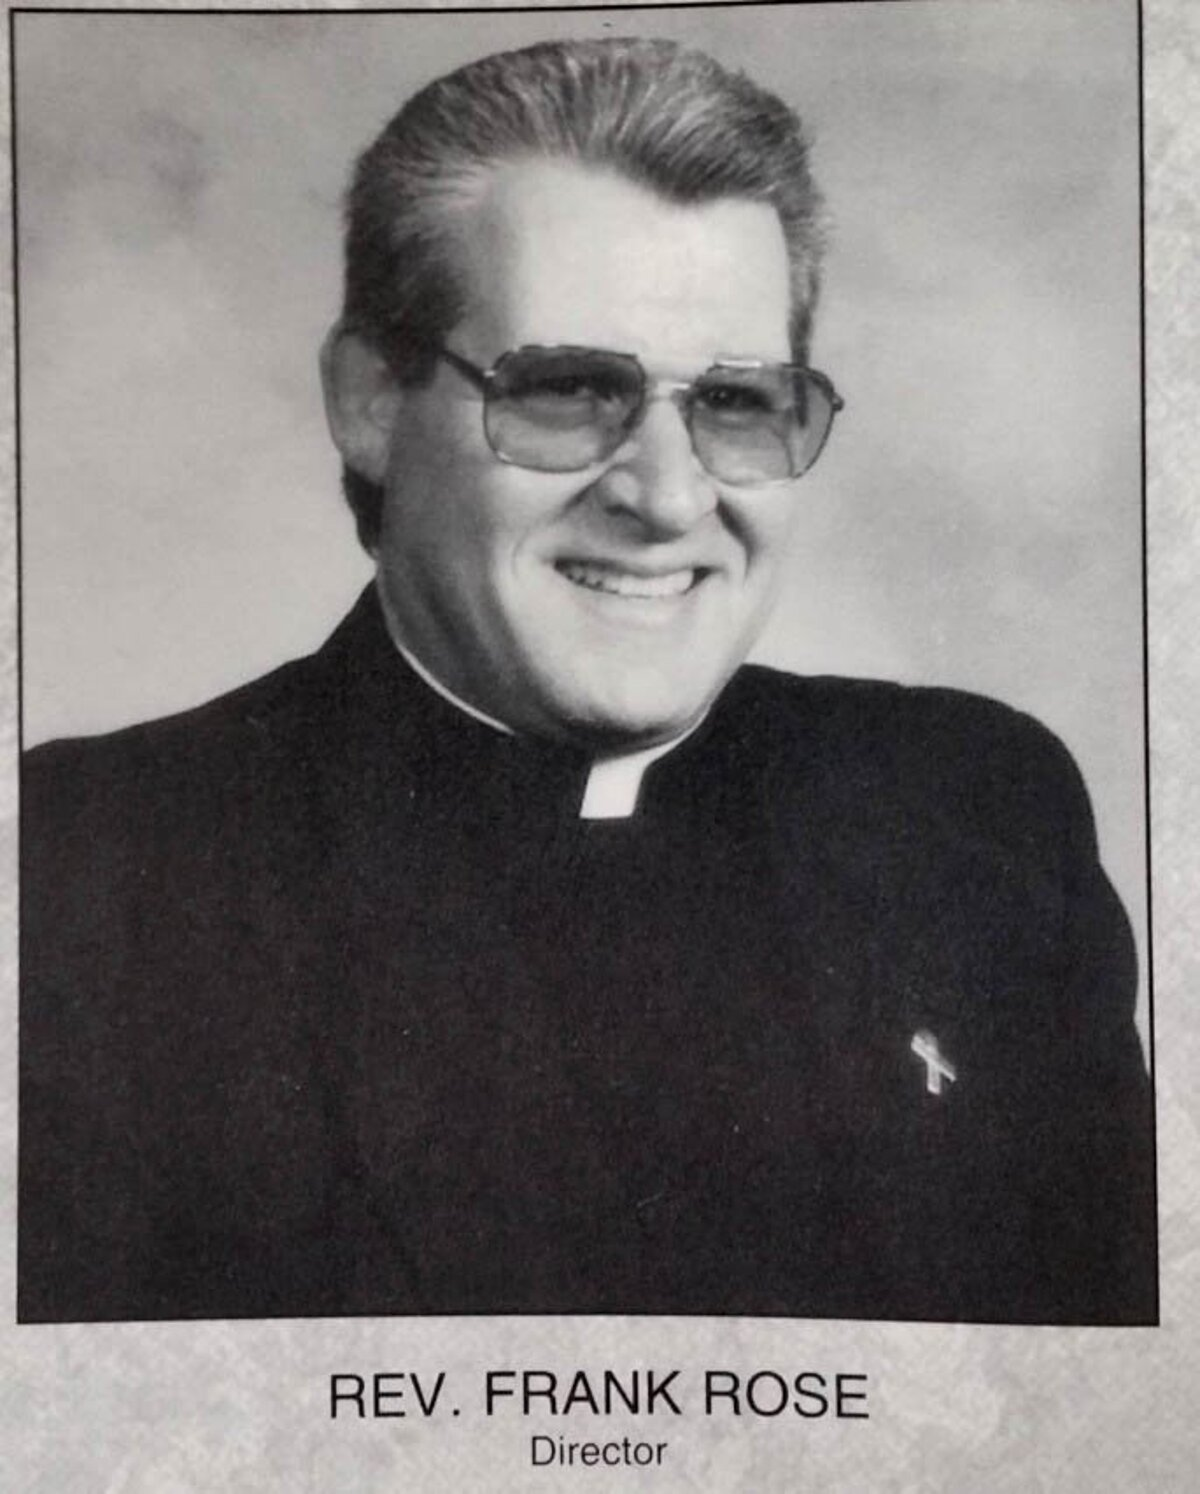 Complaint-review: Fr. Frank Rose and Peter Cheplic (New Jersey - Priests) Archidocese of Newark - Alleged perverted priests from new jersey will be mentioned on complaint archive indefinite